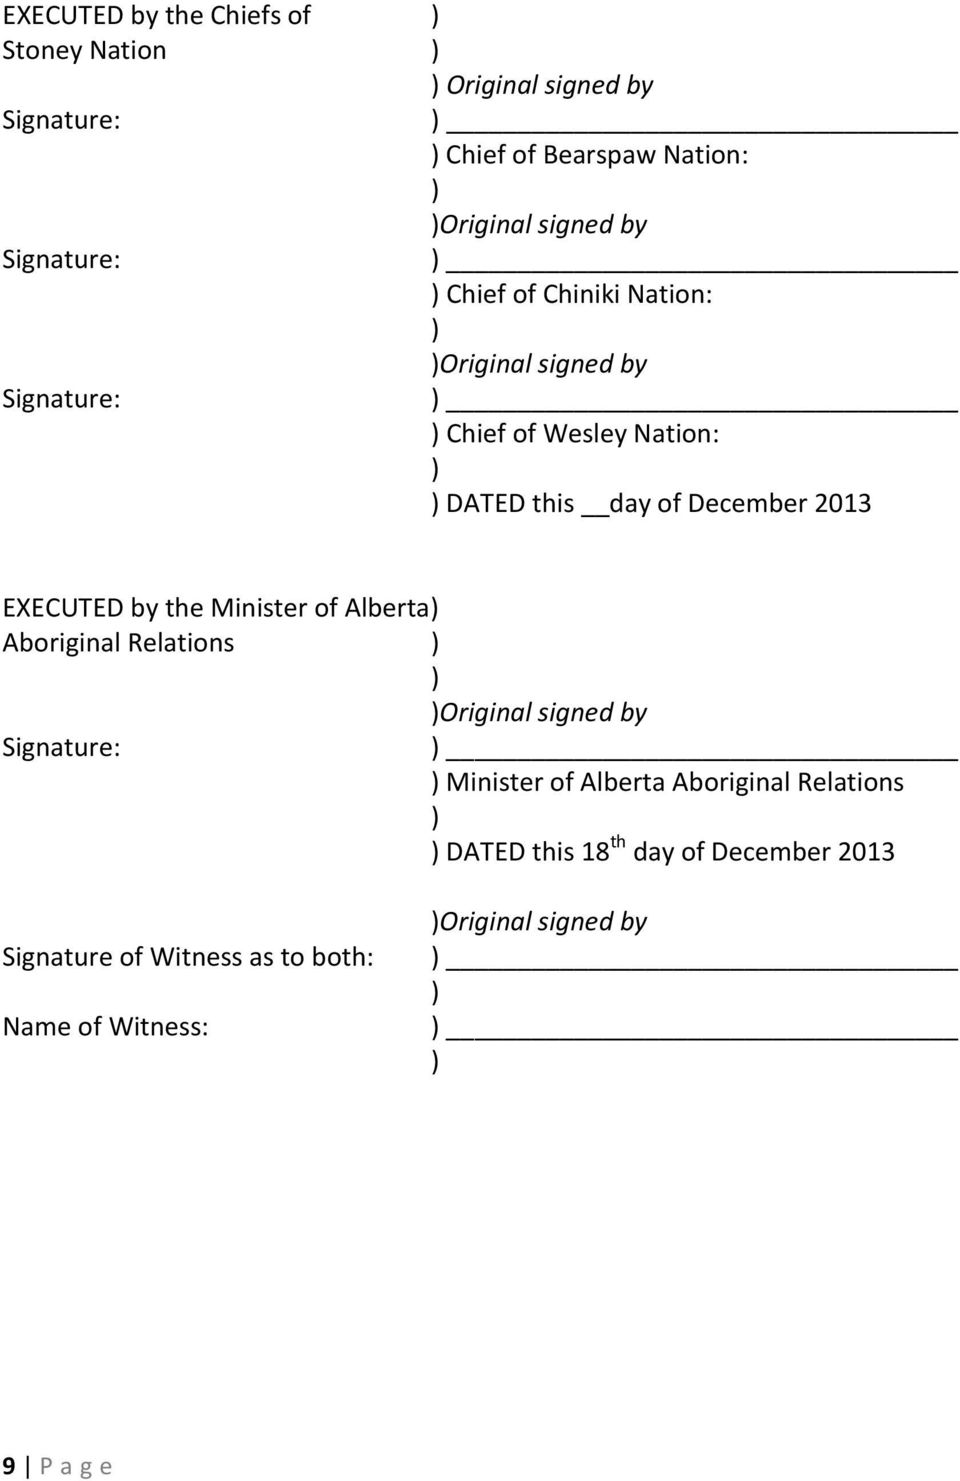 2013 EXECUTED by the Minister of Alberta Aboriginal Relations Original signed by Signature: Minister of Alberta